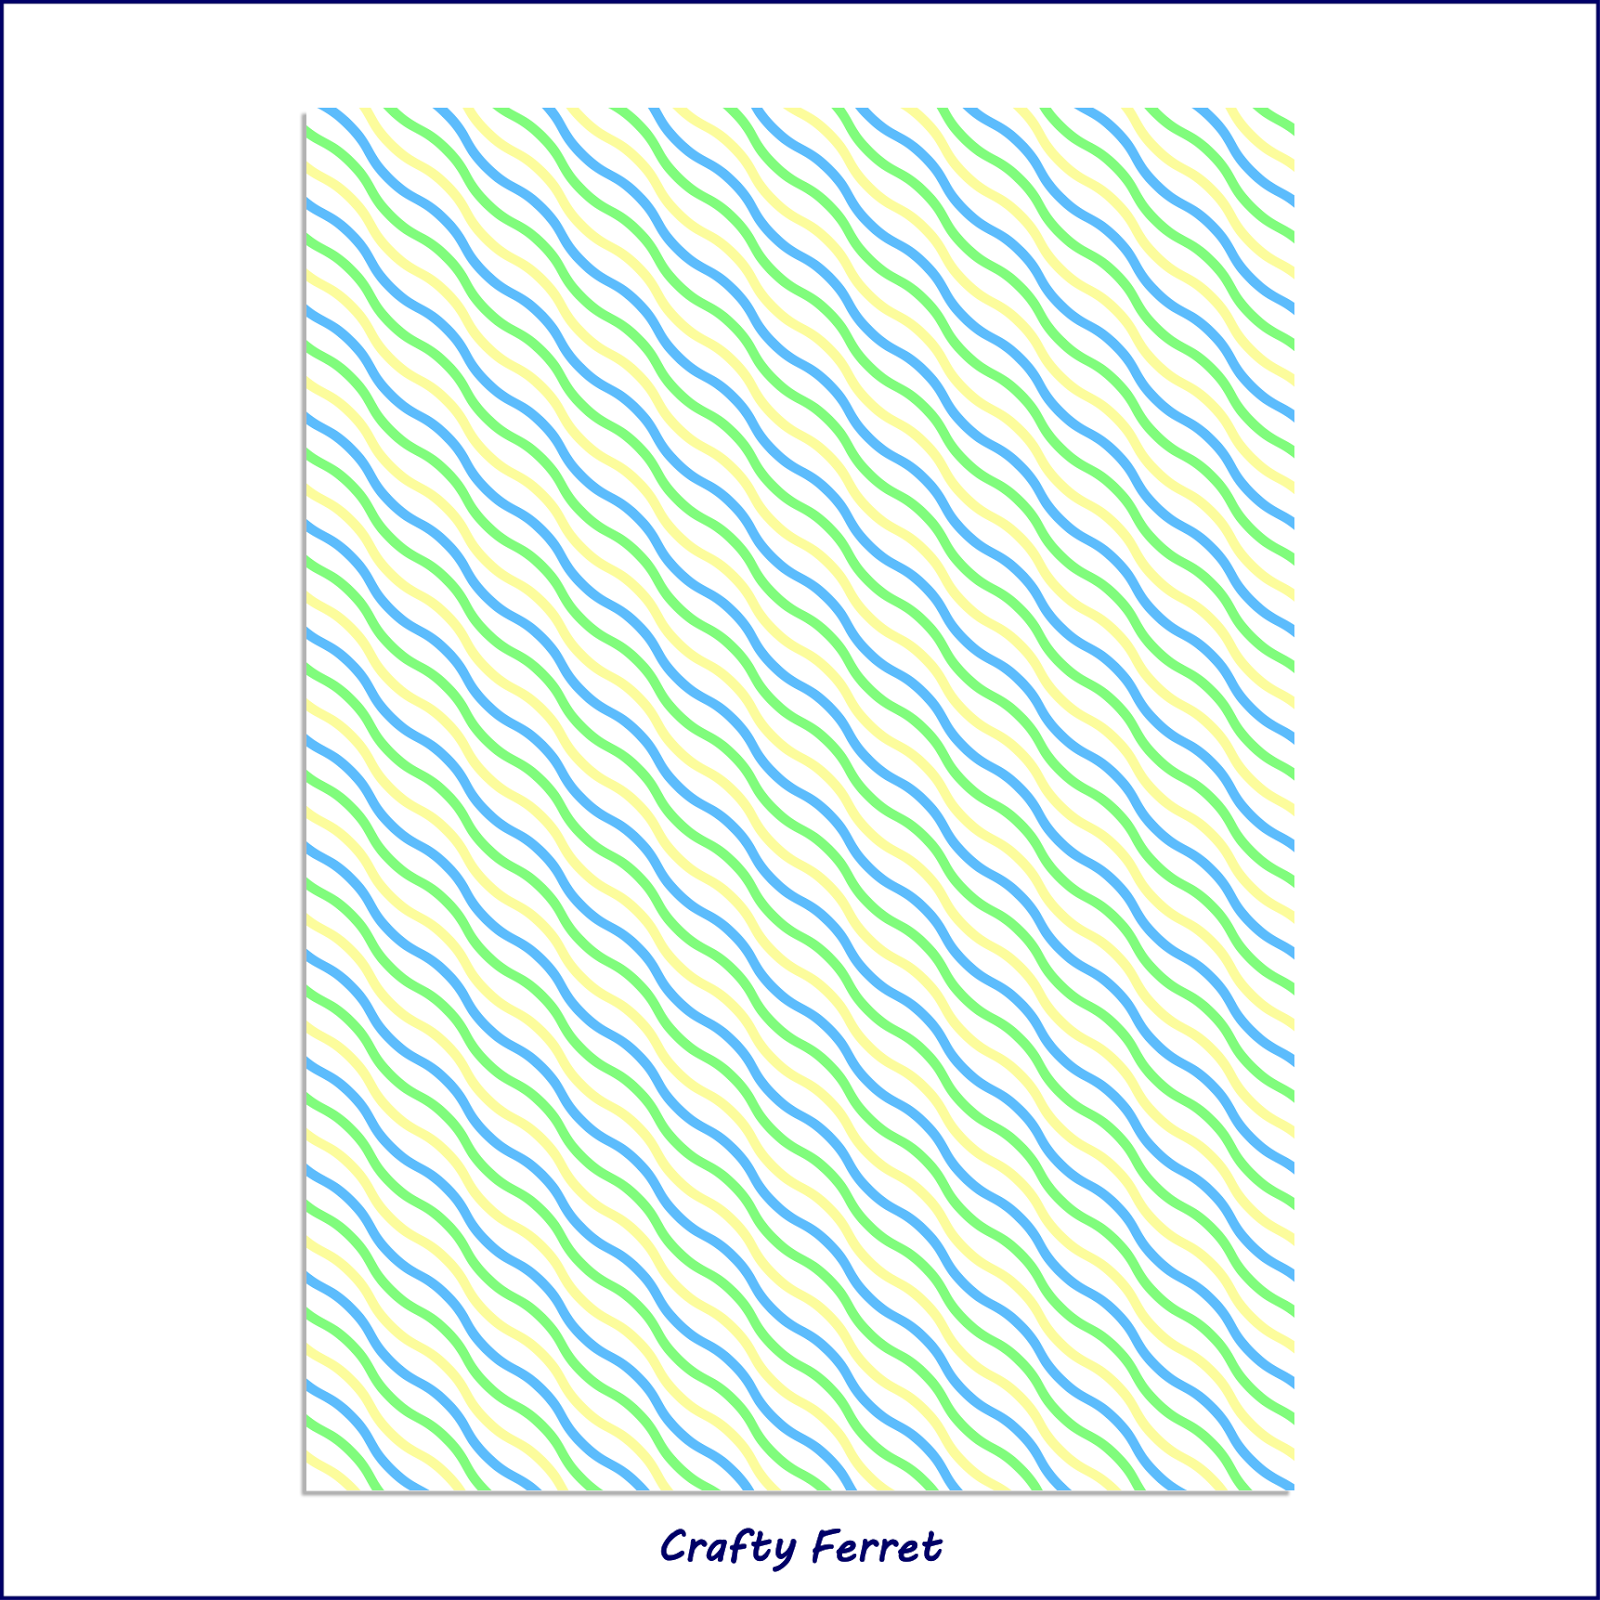 A4 printable turquoise green and yellow diagonal waves craft backing paper.